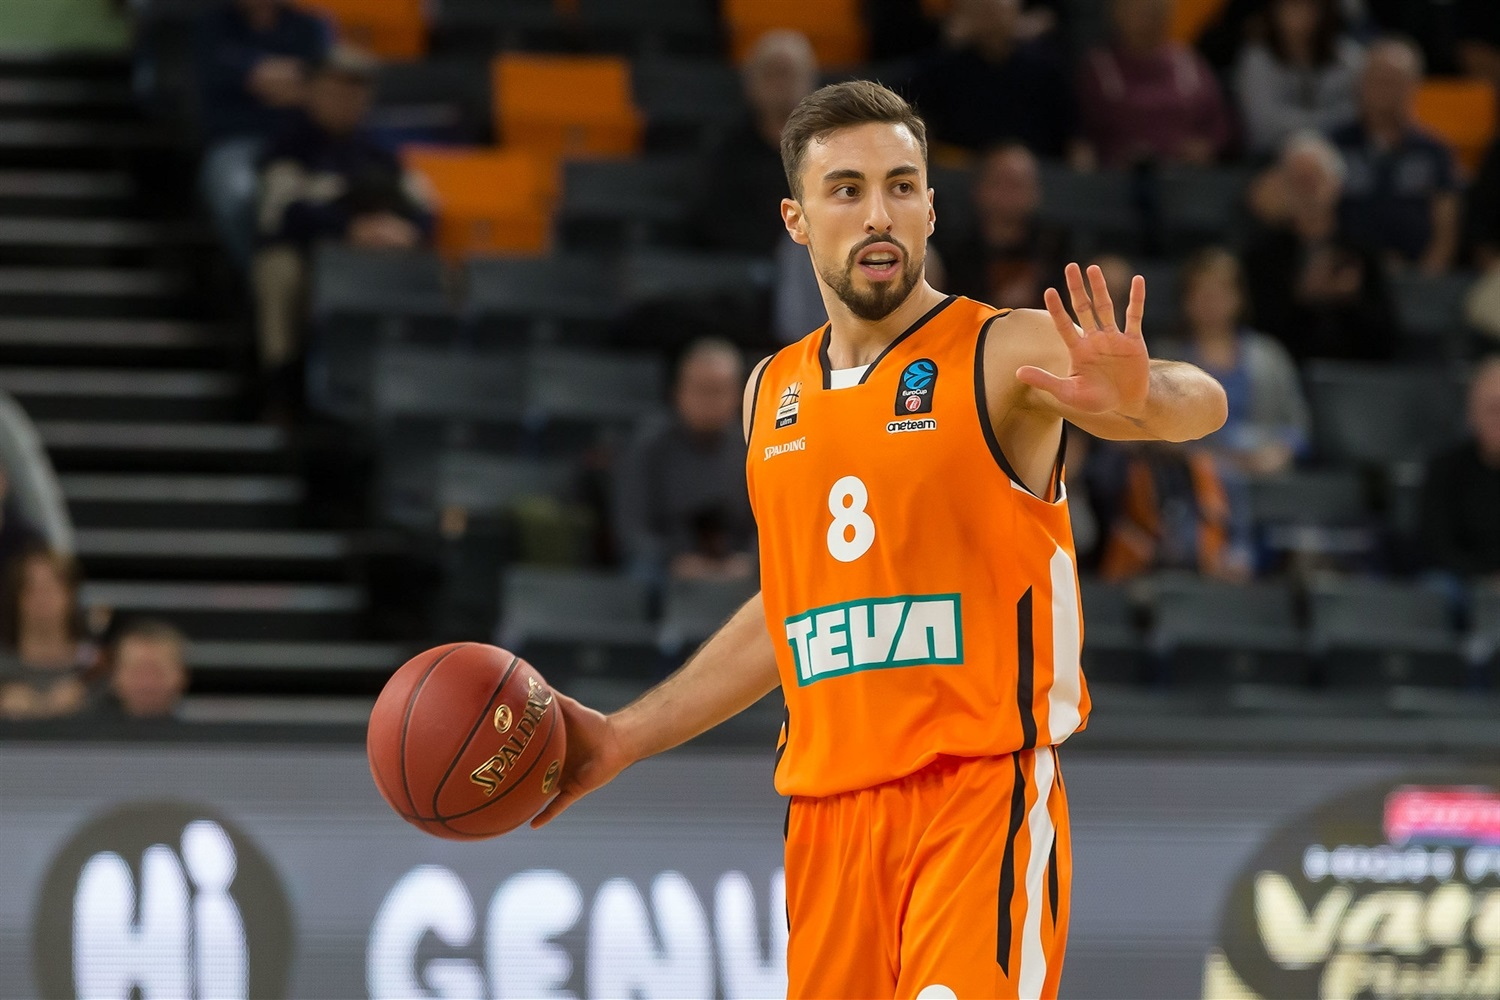 Ismet Akpinar - ratiopharm Ulm (photo Ulm) - EC18